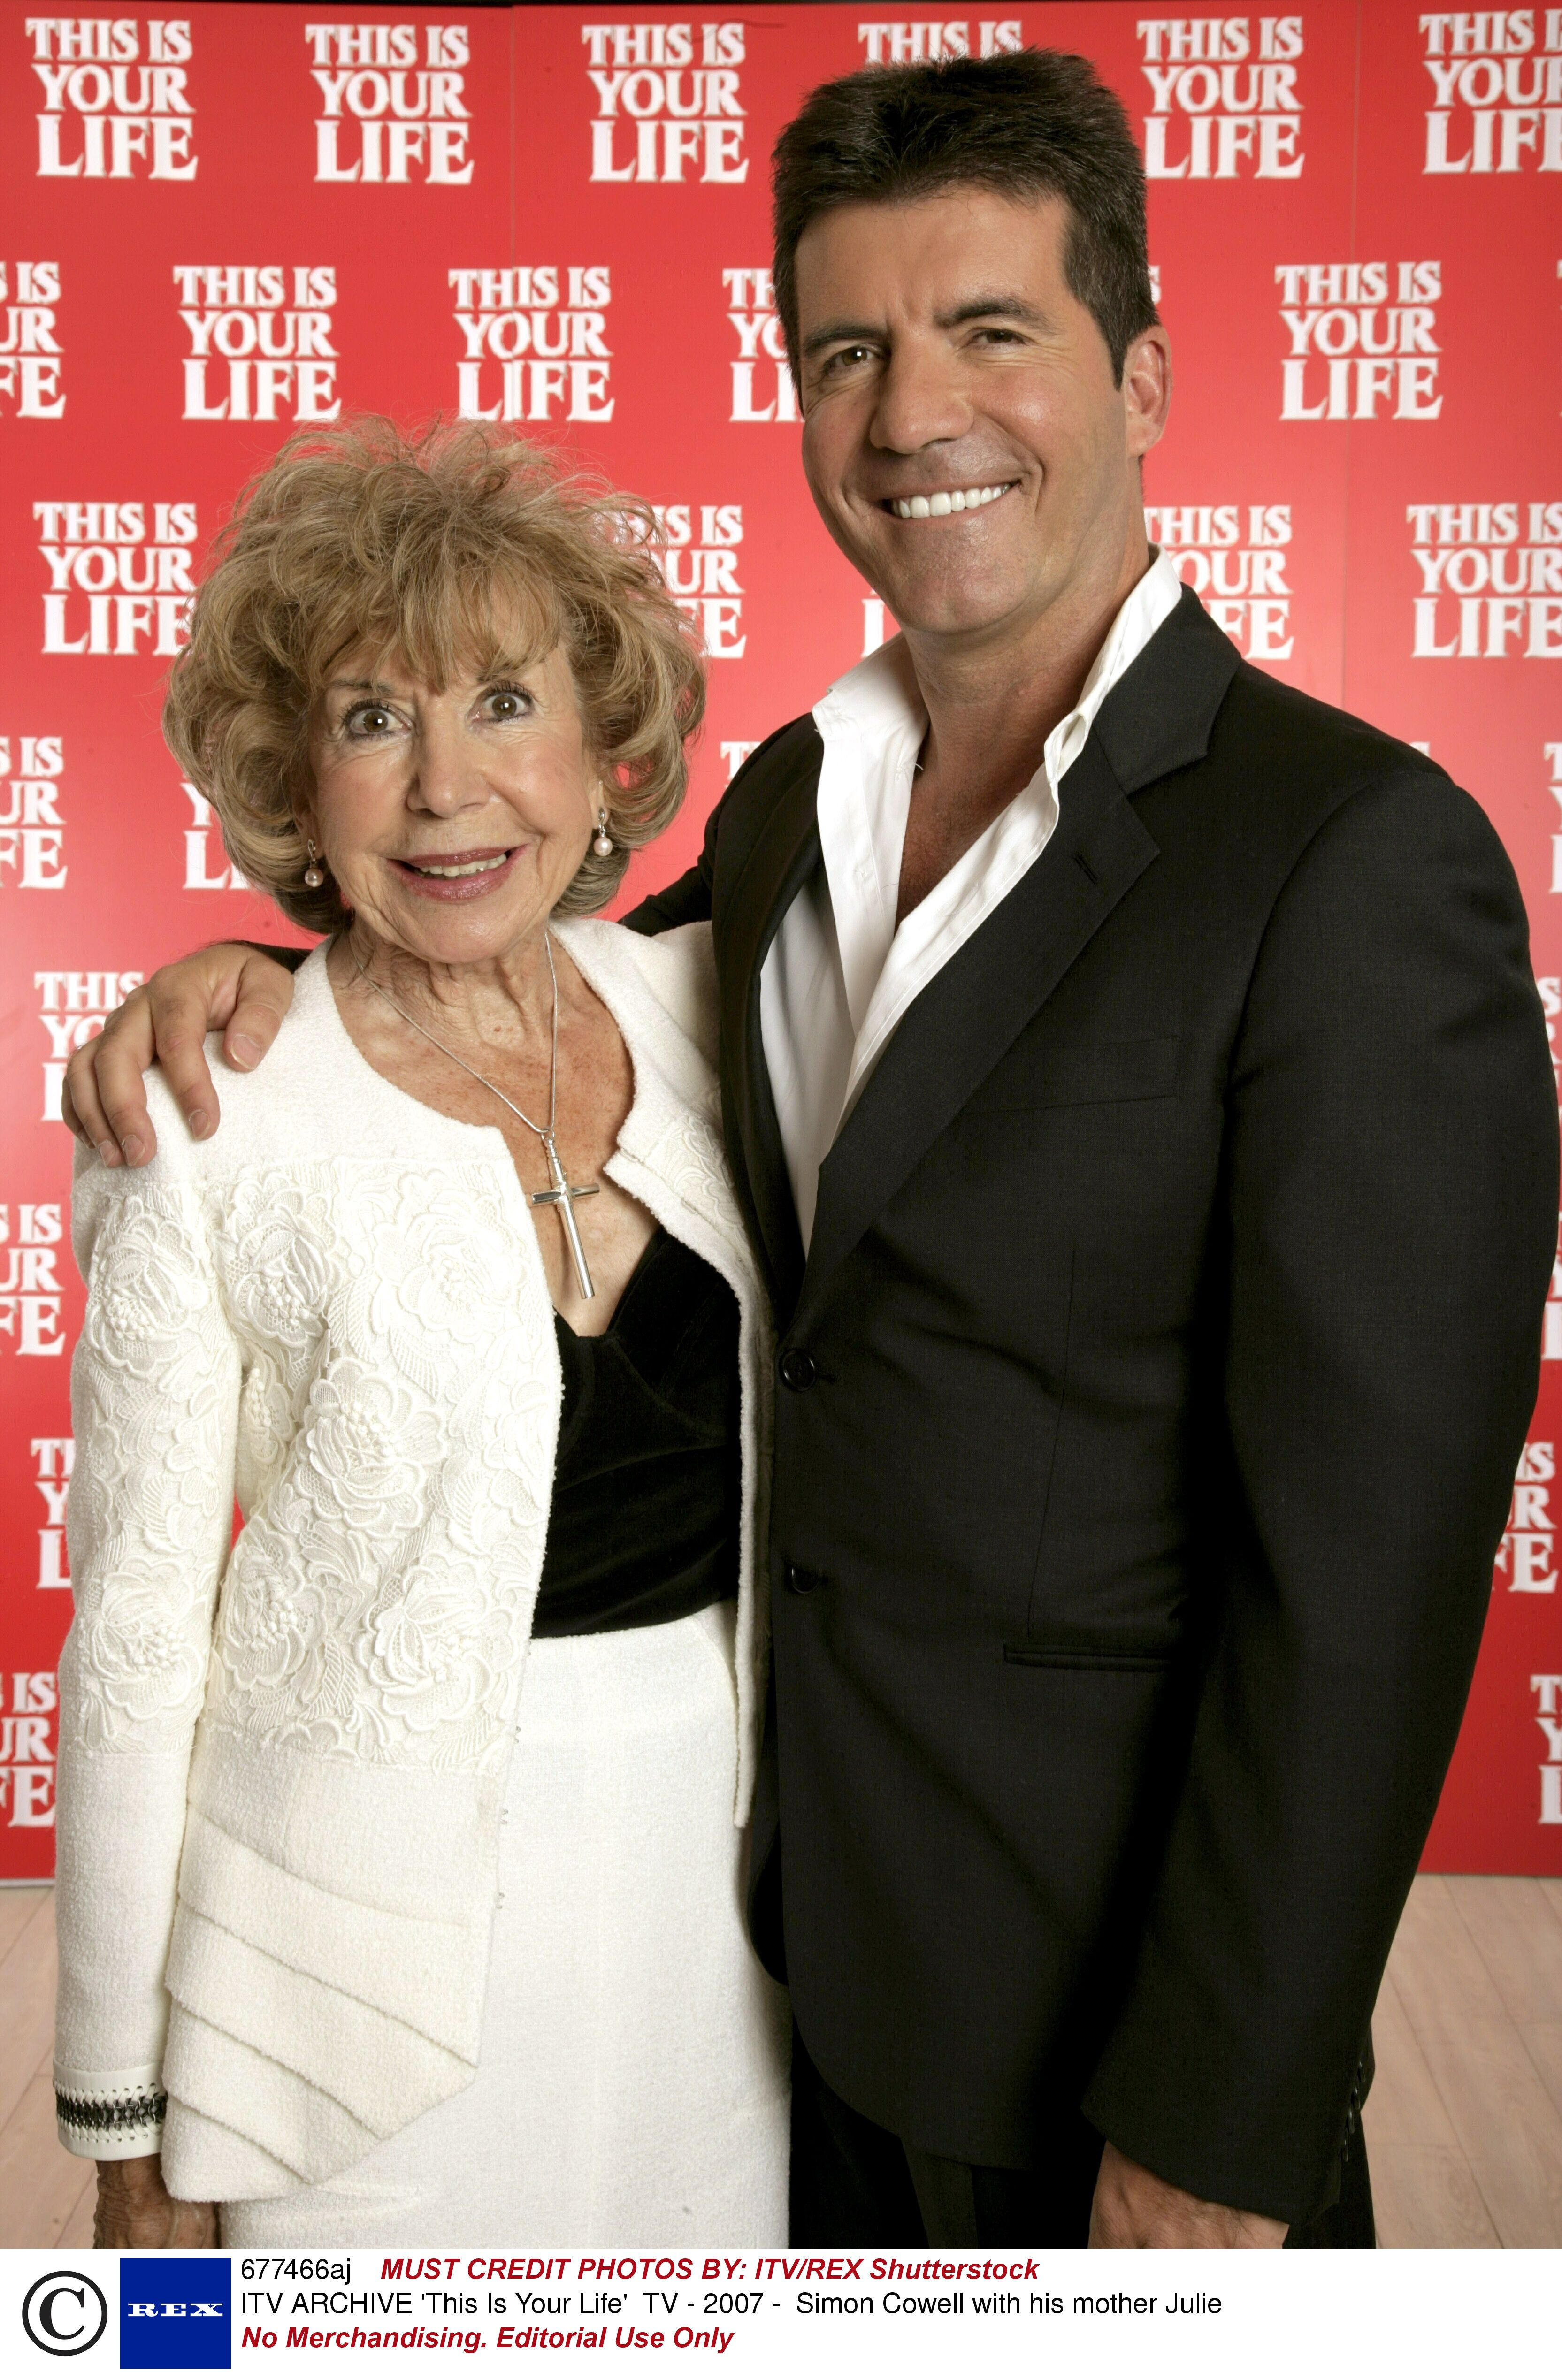 Cowell opens up about mother's death